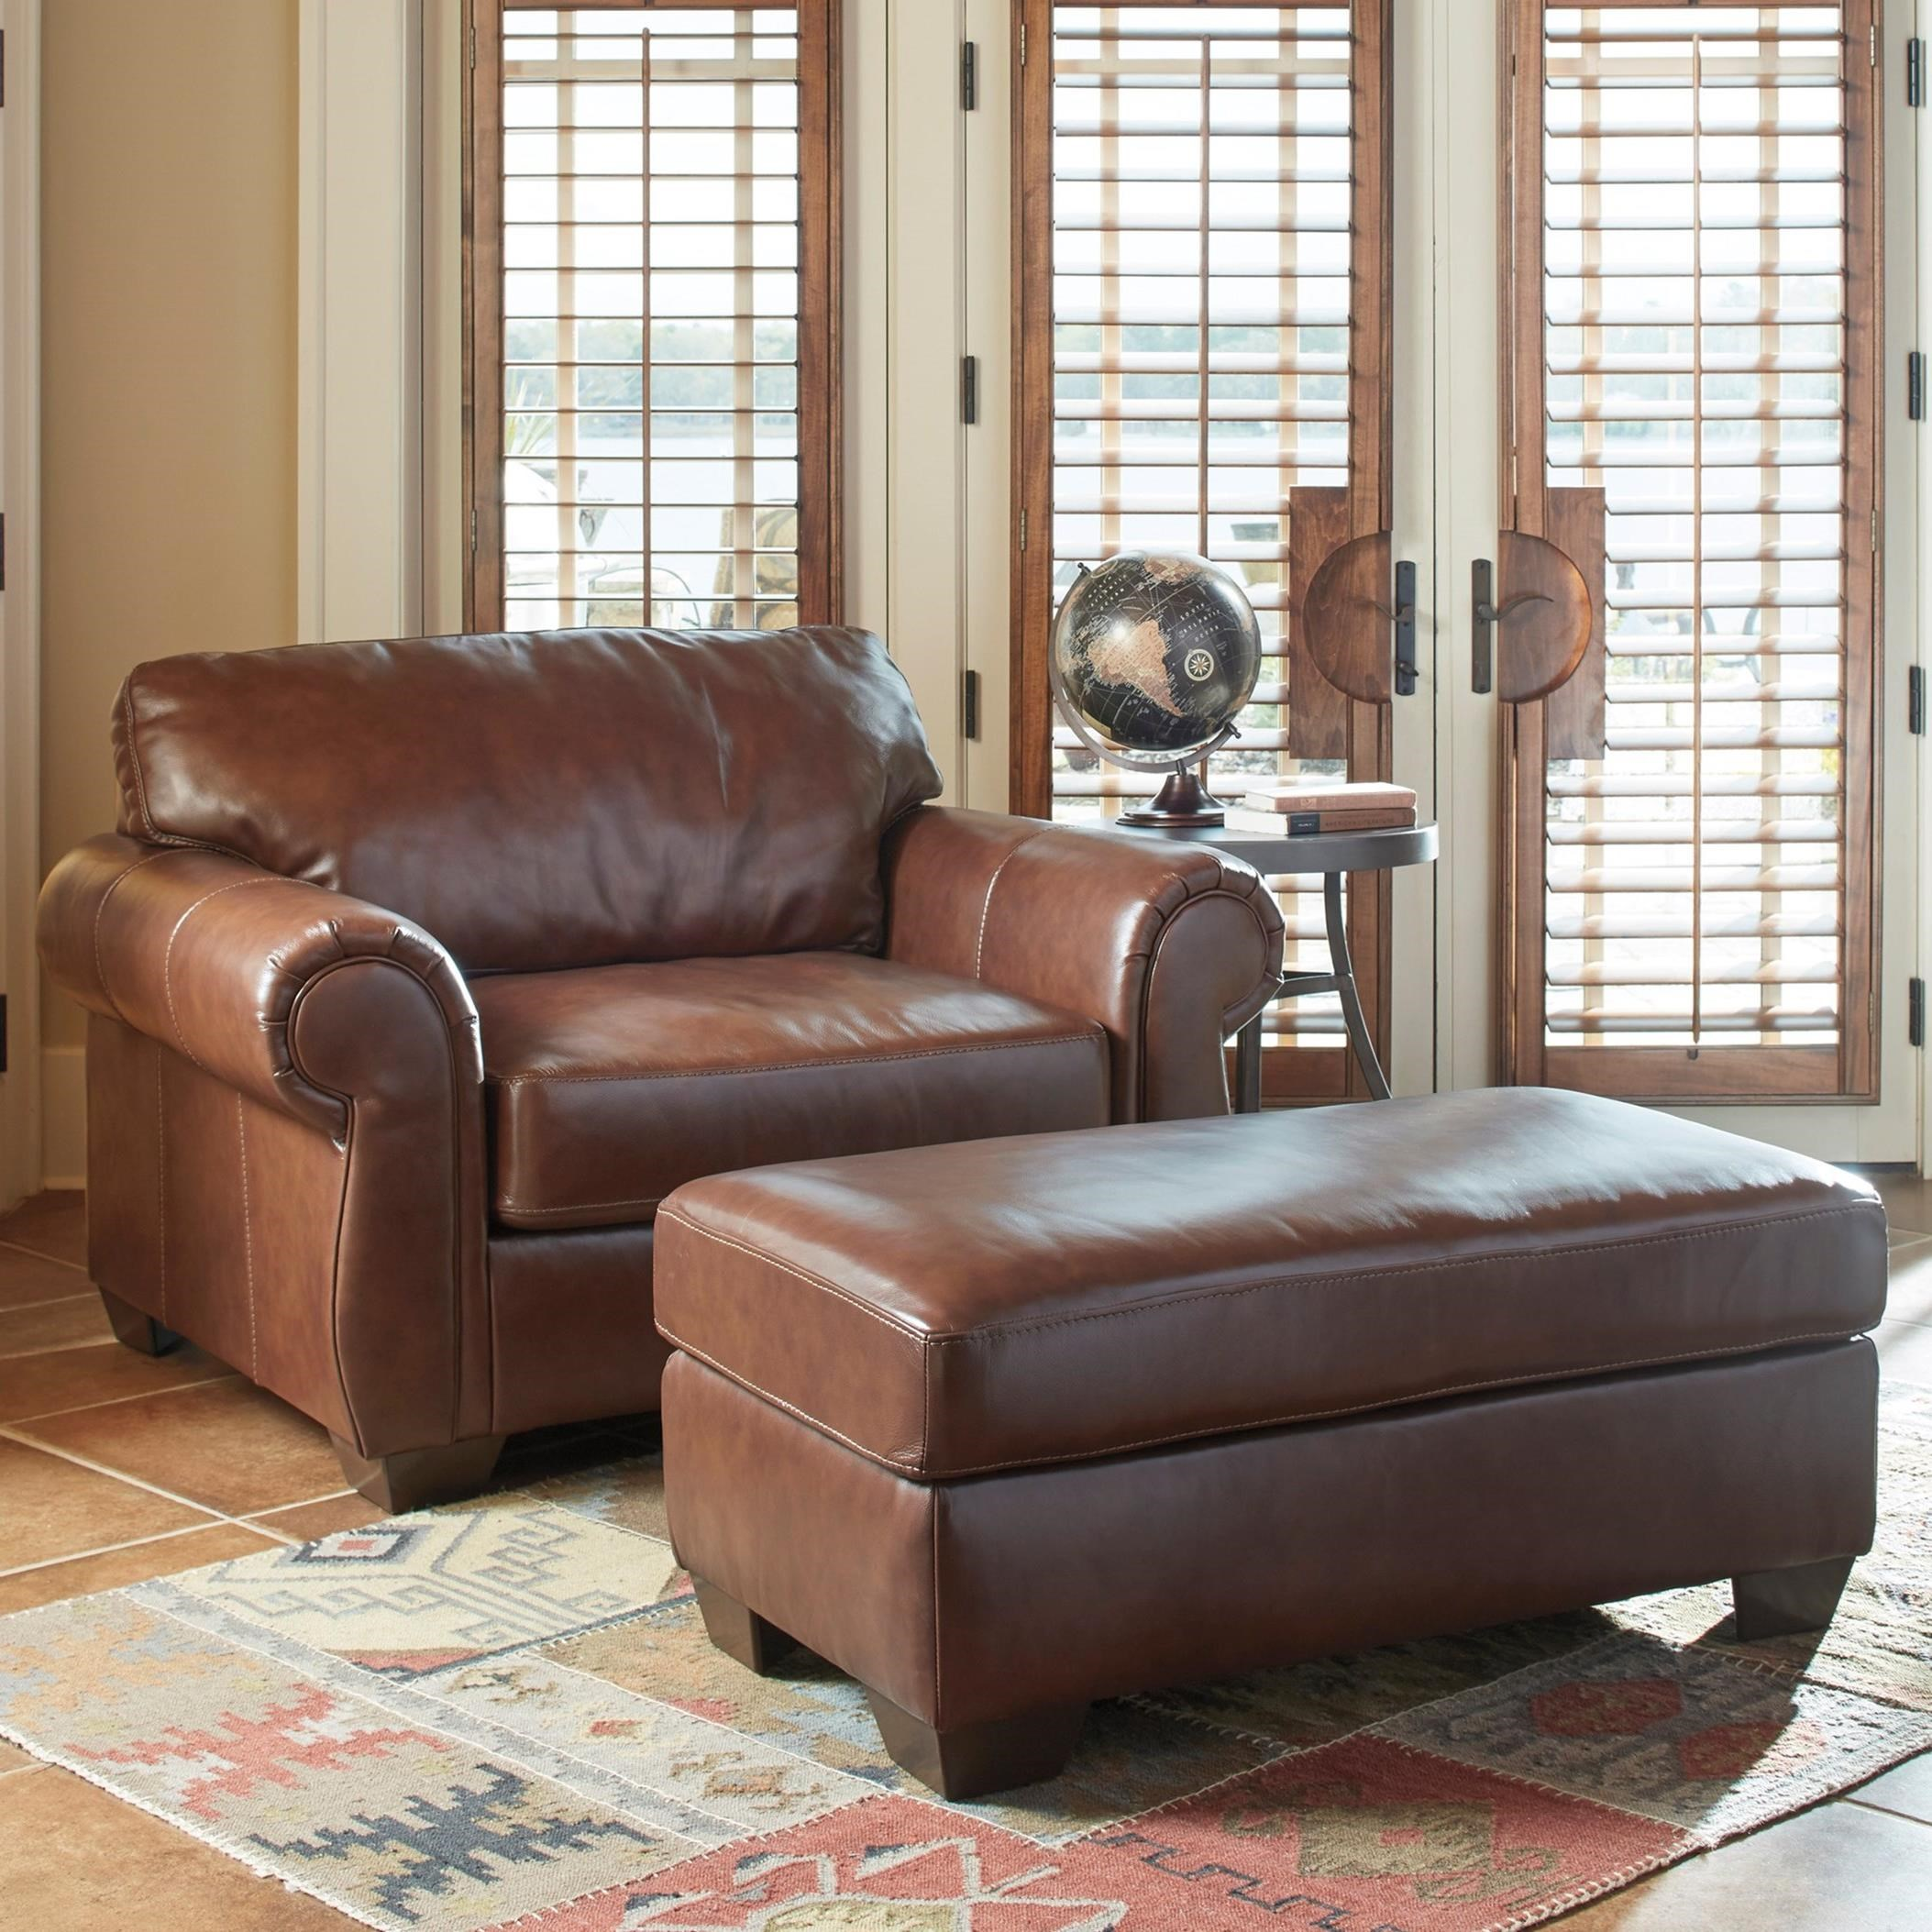 ashley tvoy ebay leather walnut half a and bhp axiom chair l upholstery with dcxqsa ottoman